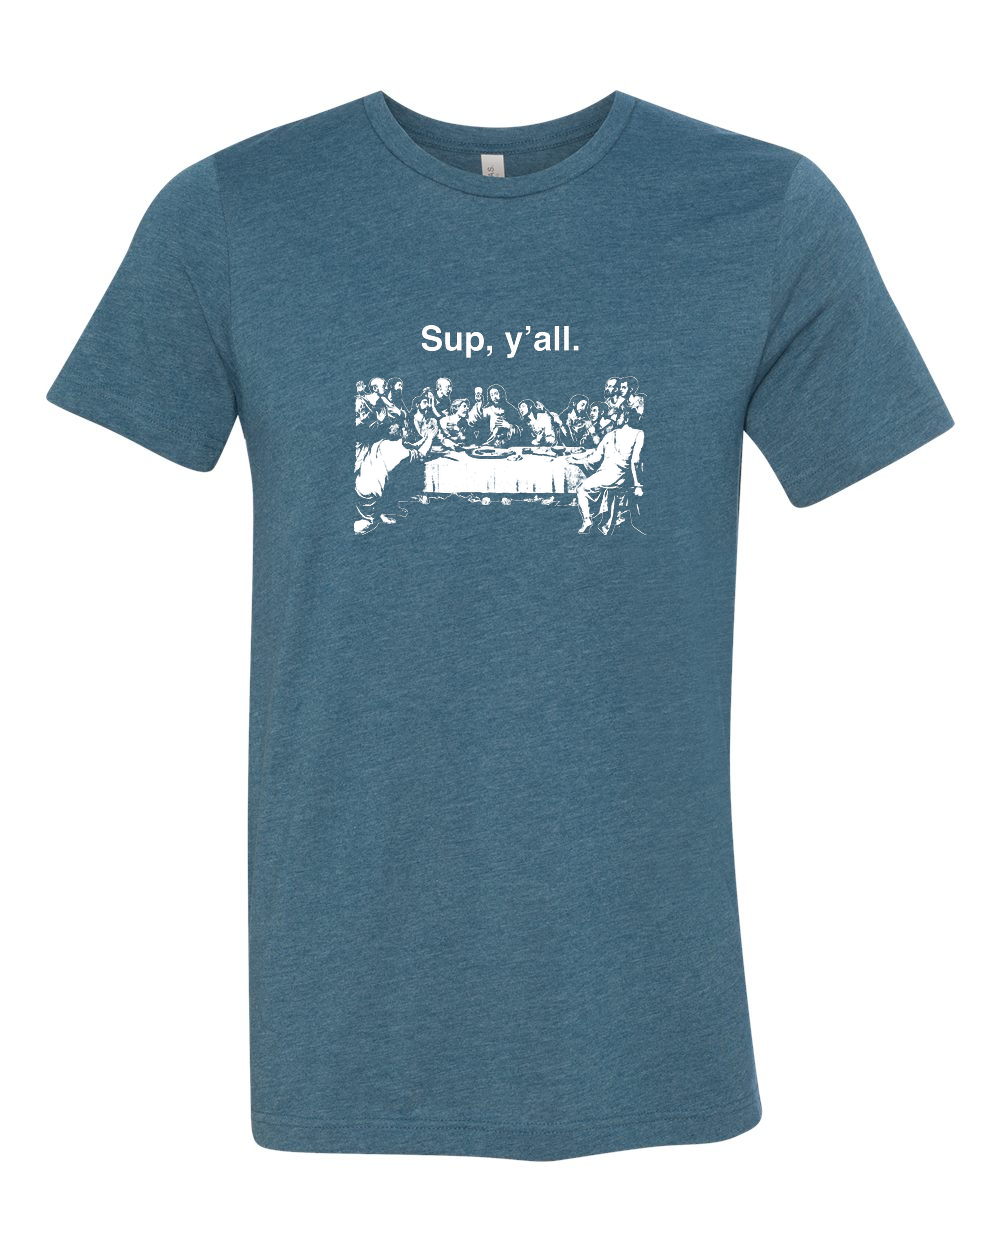 Sup y'all - Last Supper T Shirt - That One Sheep